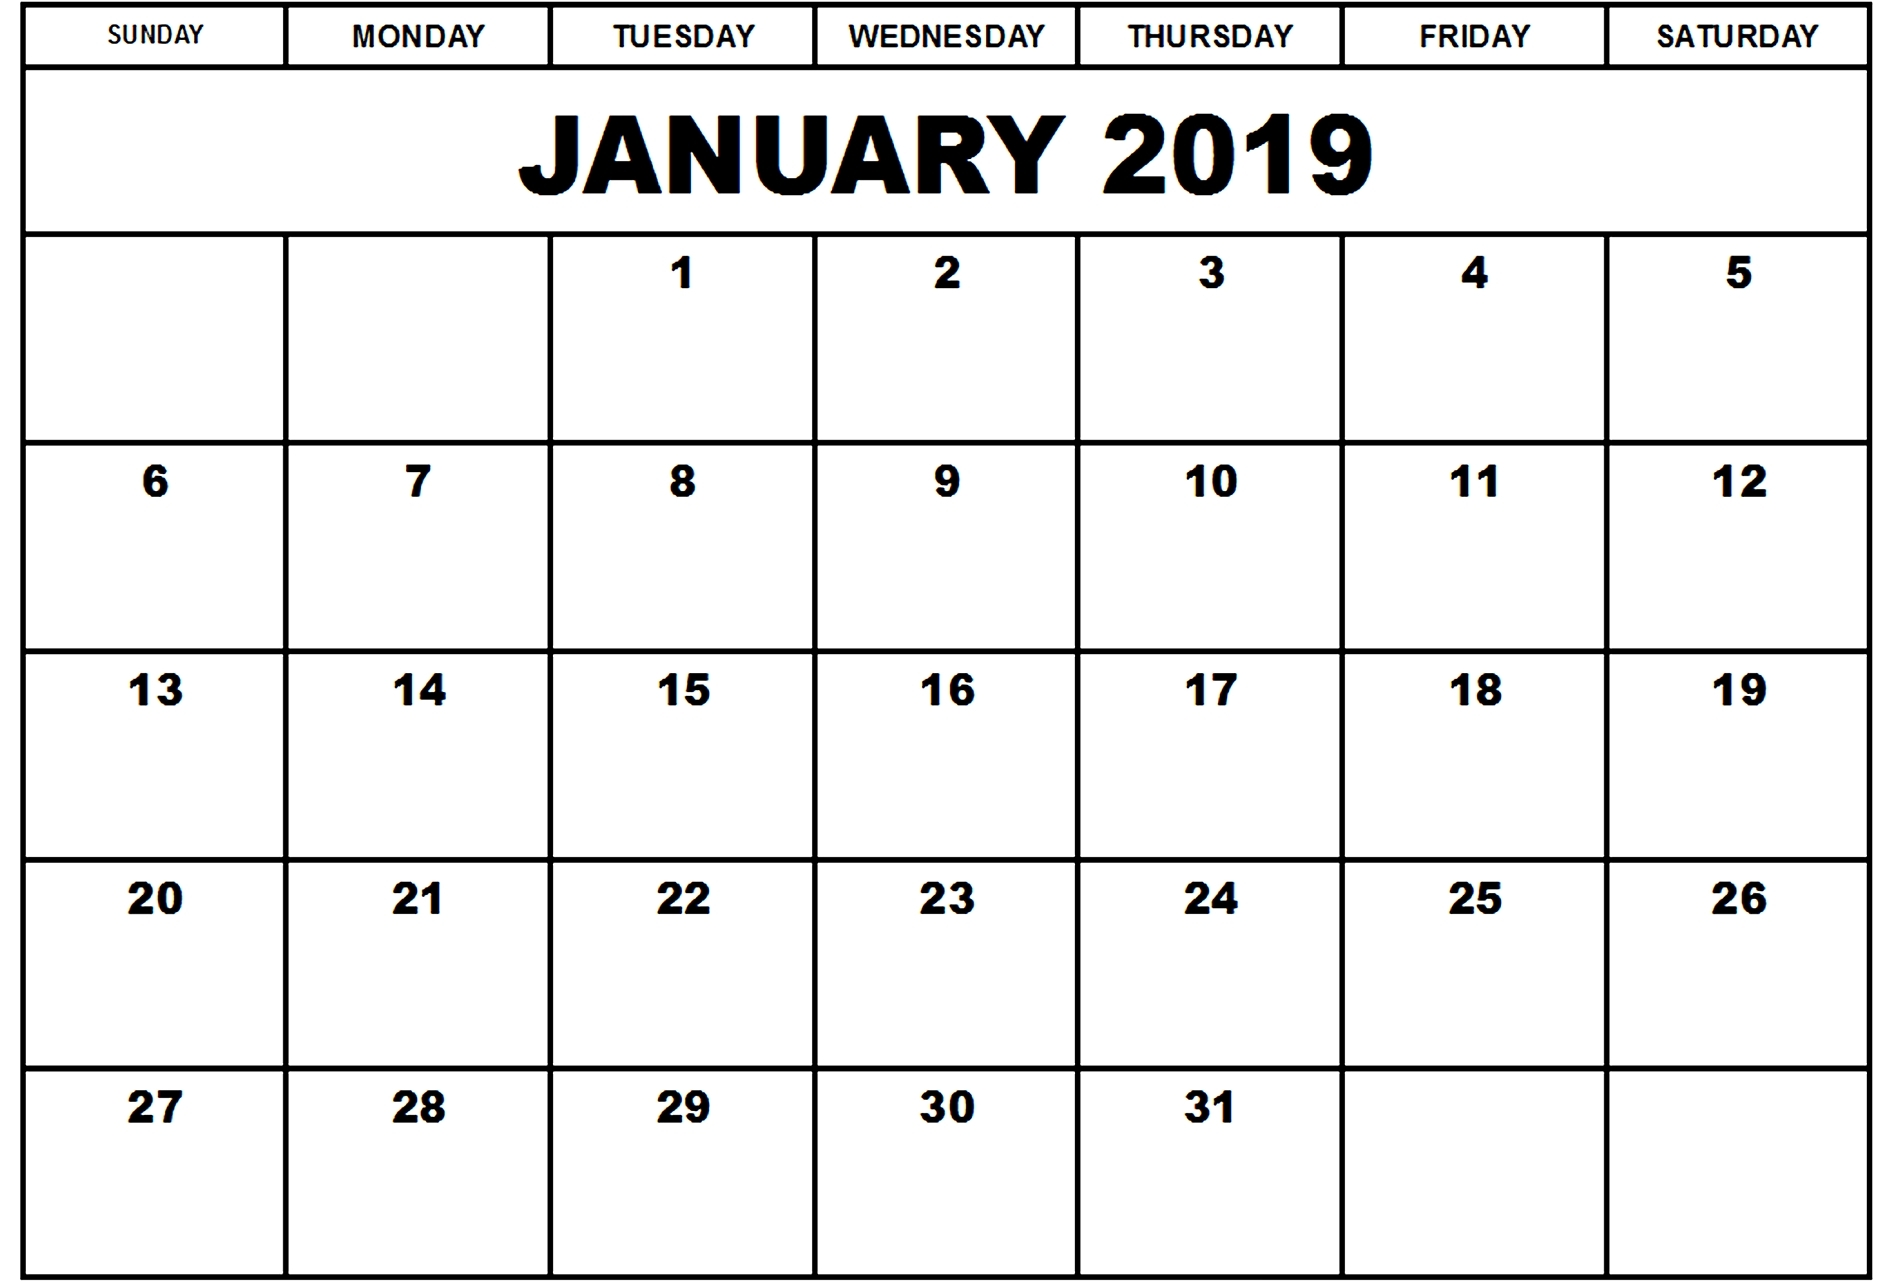 january 2019 calendar printable template calendar template letter::January 2019 Calendar Templates